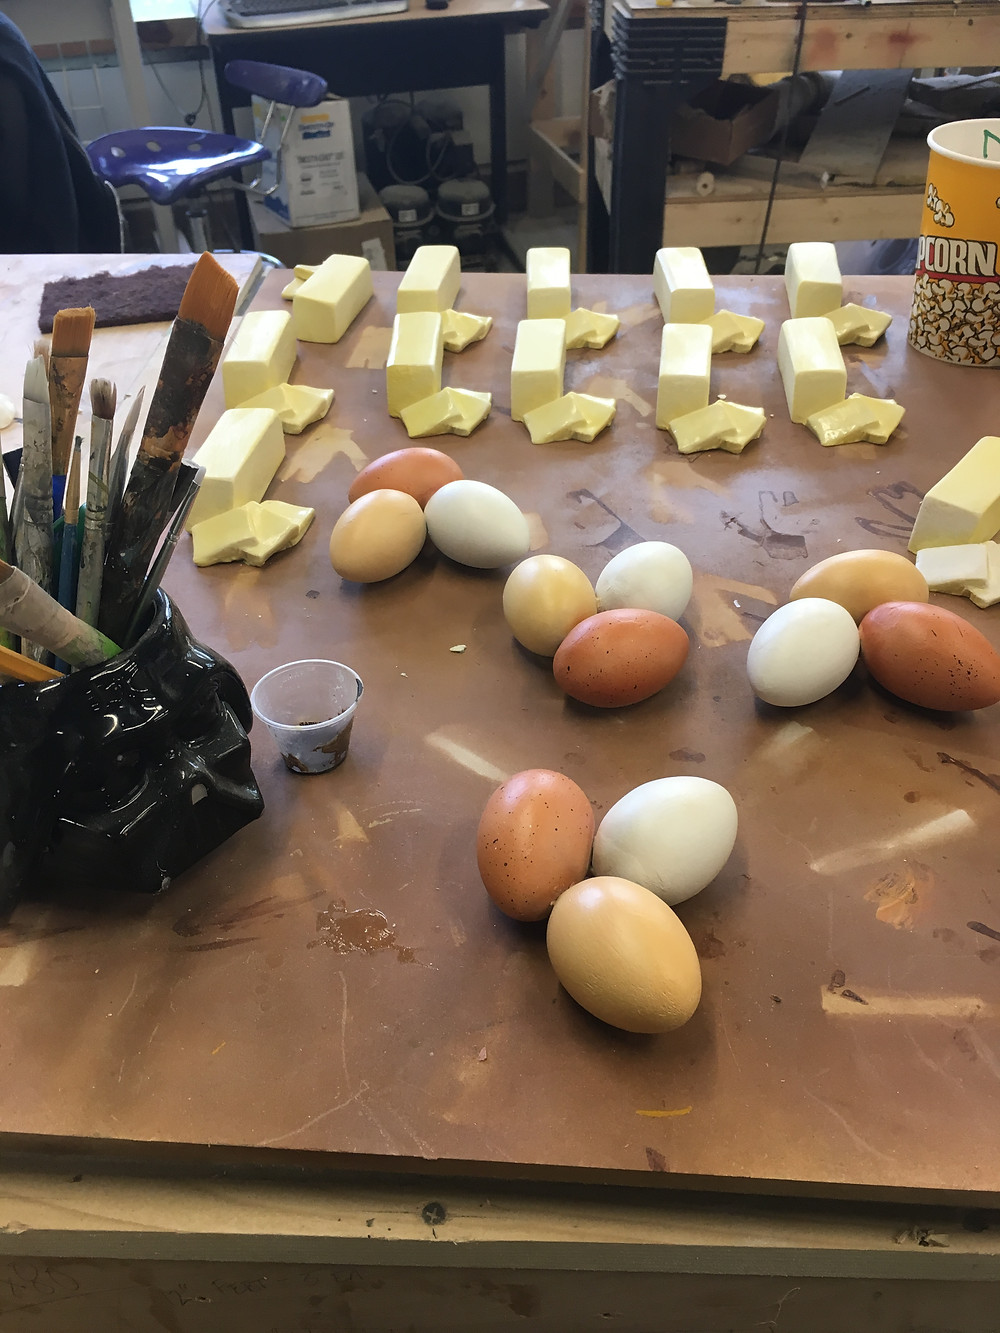 Paint a few hundred eggs why don't you